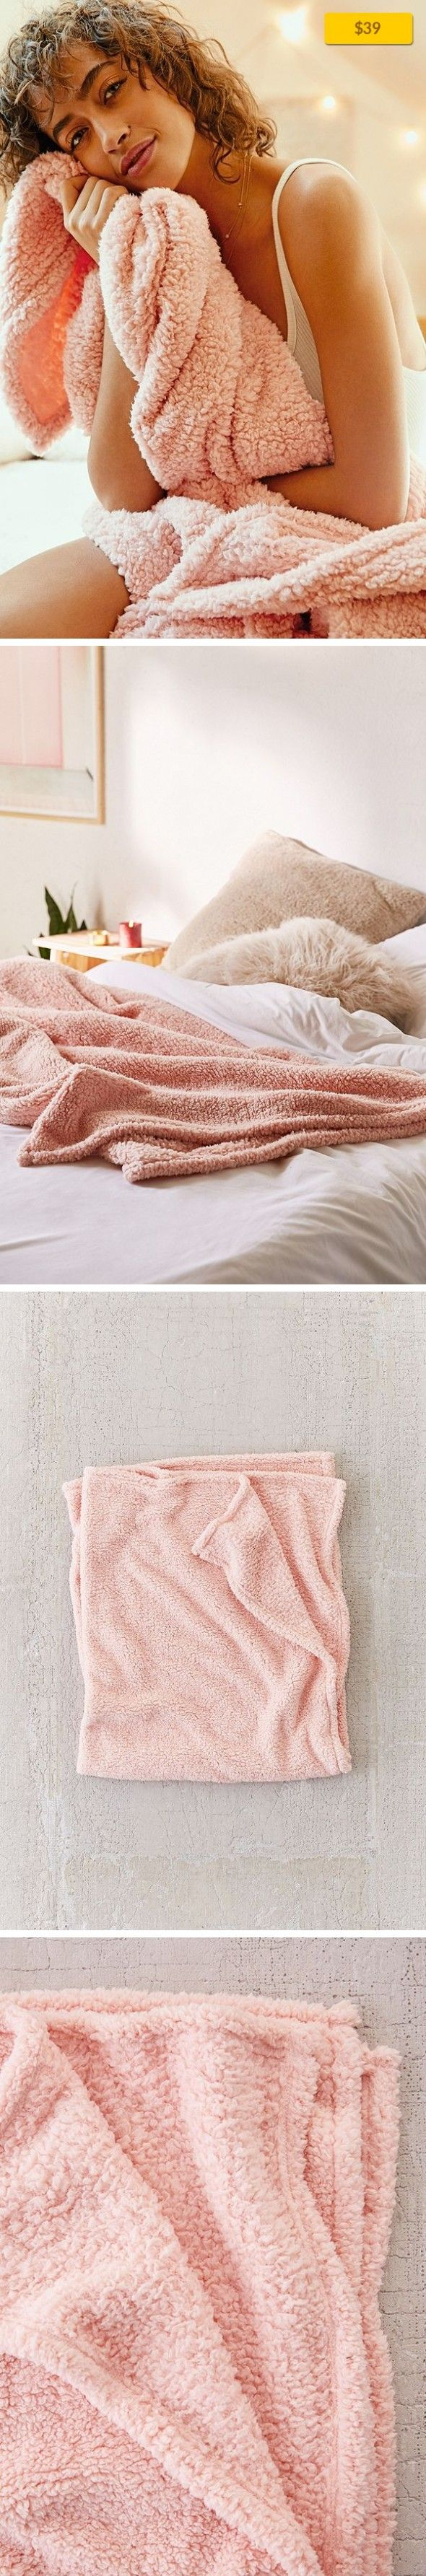 """Amped Fleece Throw Blanket Apartment, Bedding, Pillows + Throws   Super soft + cozy fleece blanket you'll always wanna be wrapped up in. In lots of colors to suit any space, drape it on a chair, couch or at the foot of your bed. Great for travel, too! Content + Care - Polyester - Spot clean - Imported Size - Dimensions: 60""""l x 71""""h"""